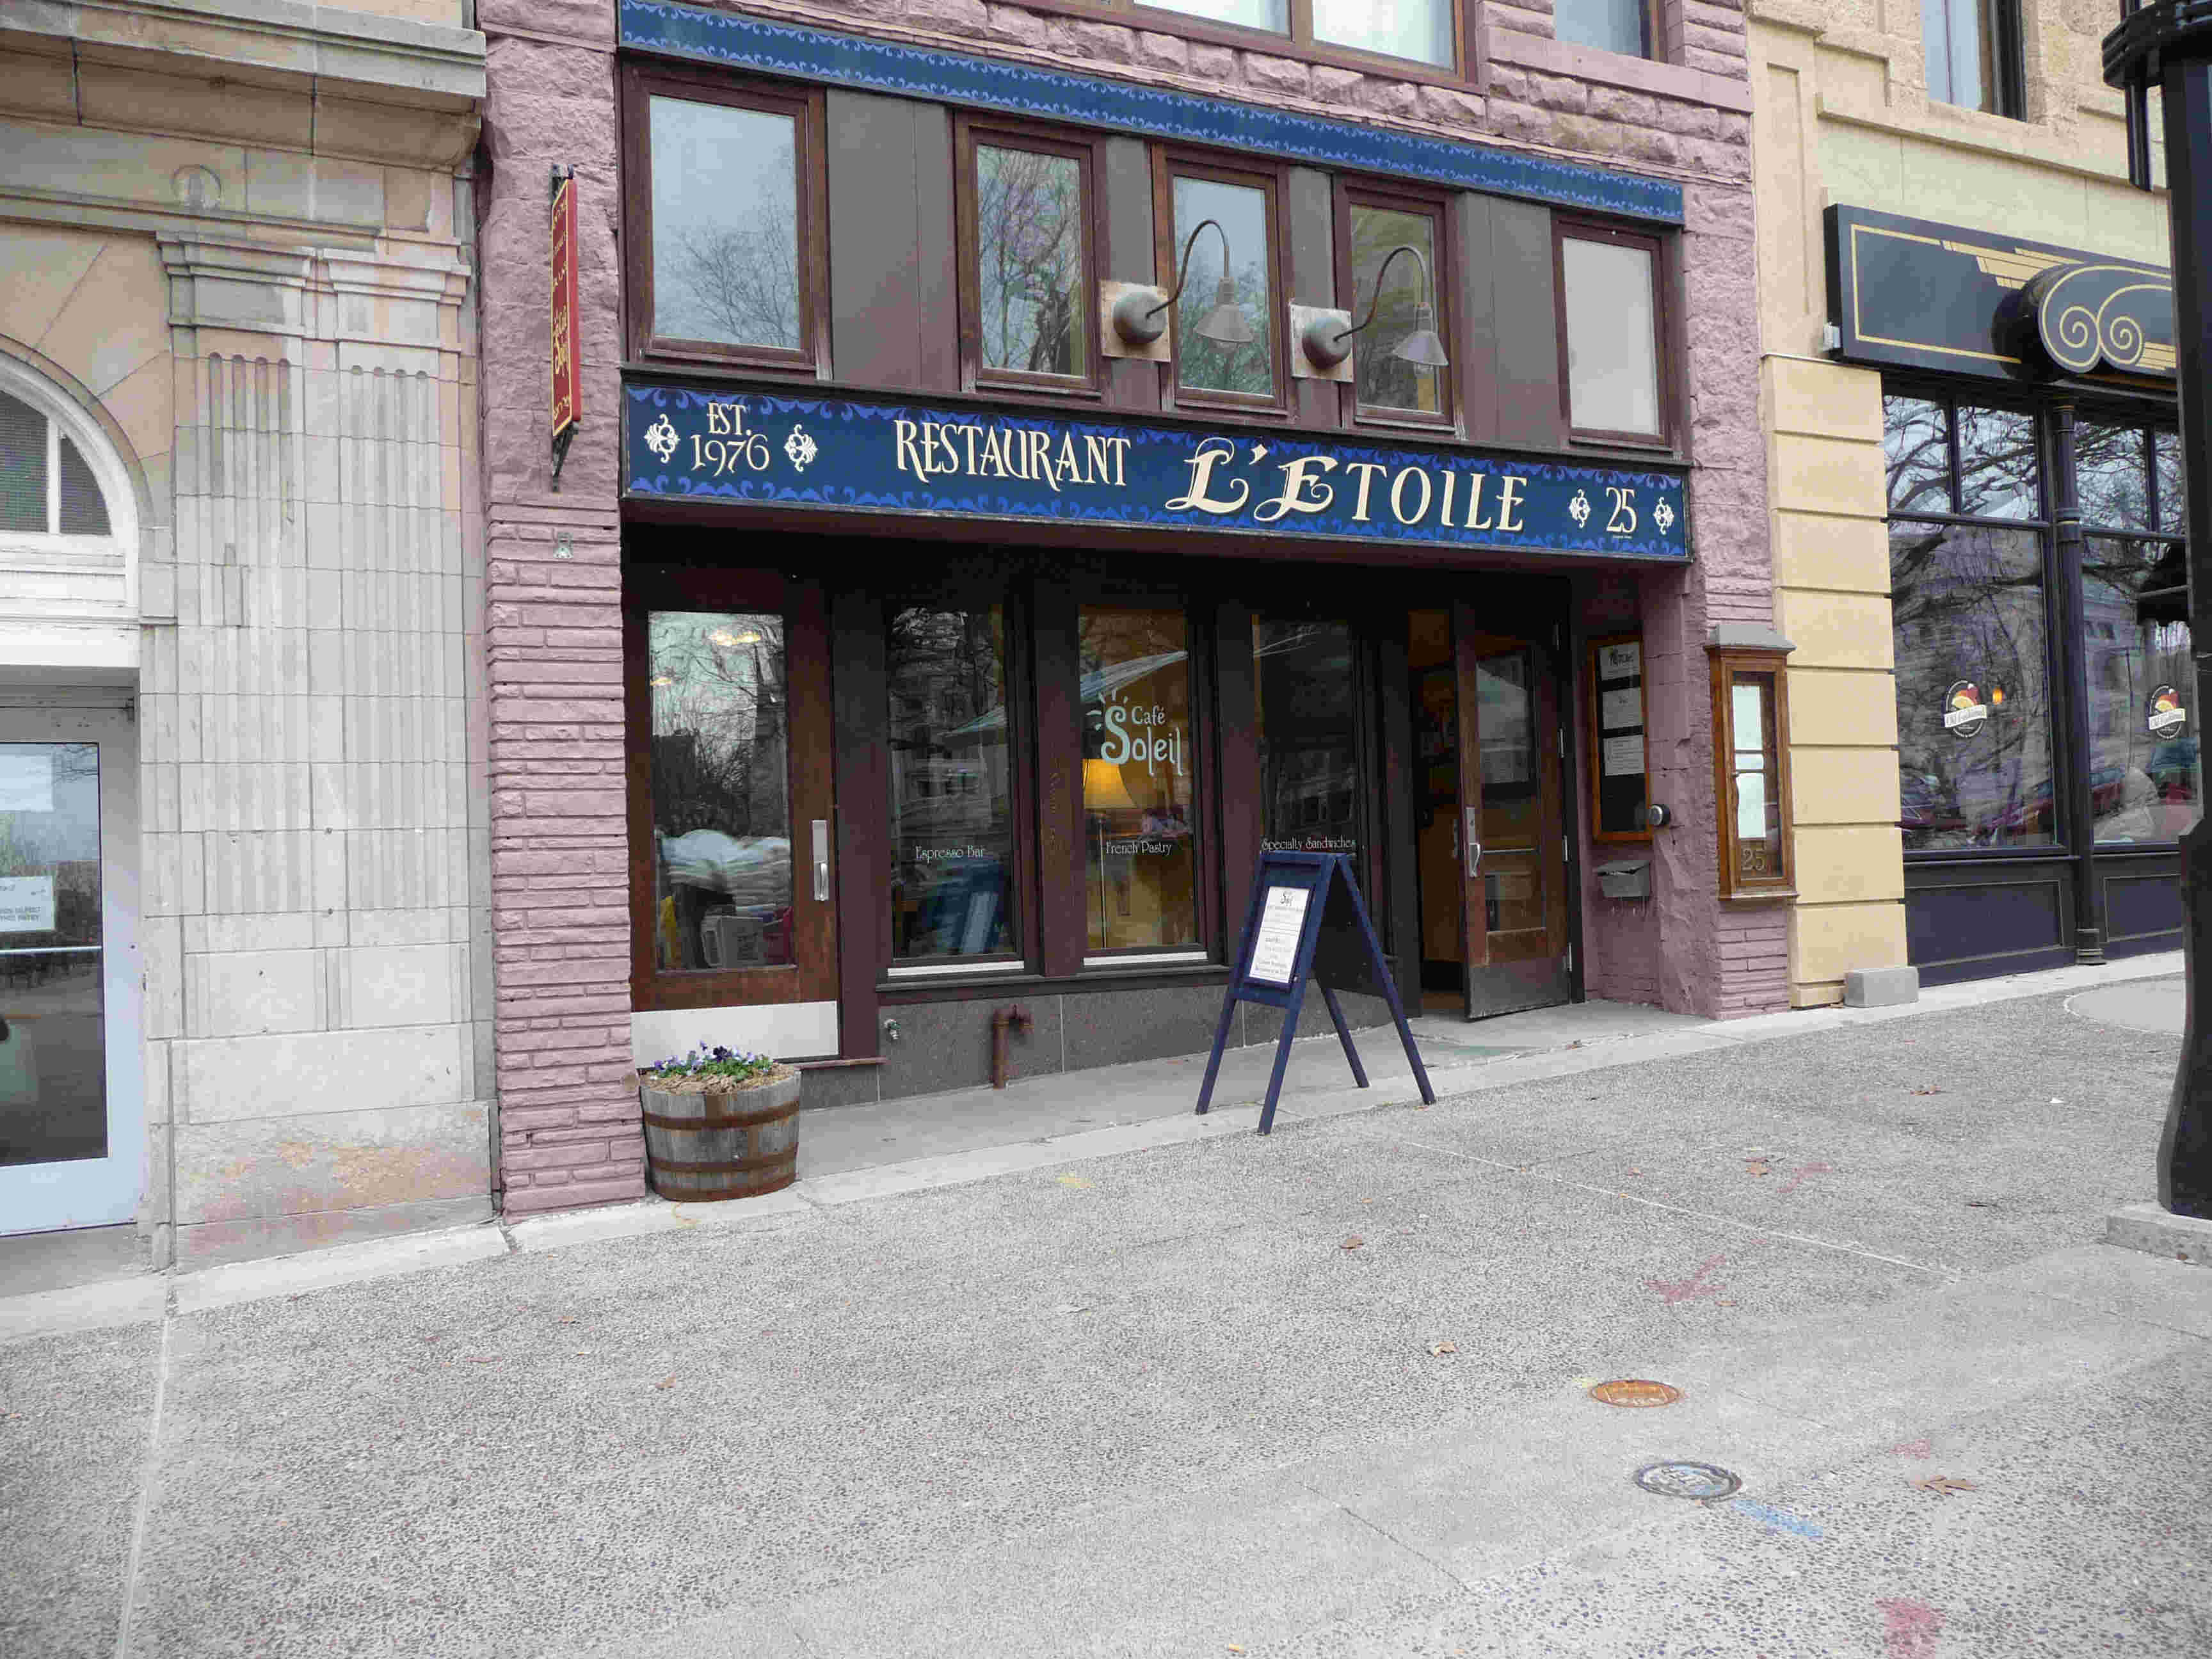 Cafe Soleil is on the ground level of L'Etoile Restaurant.